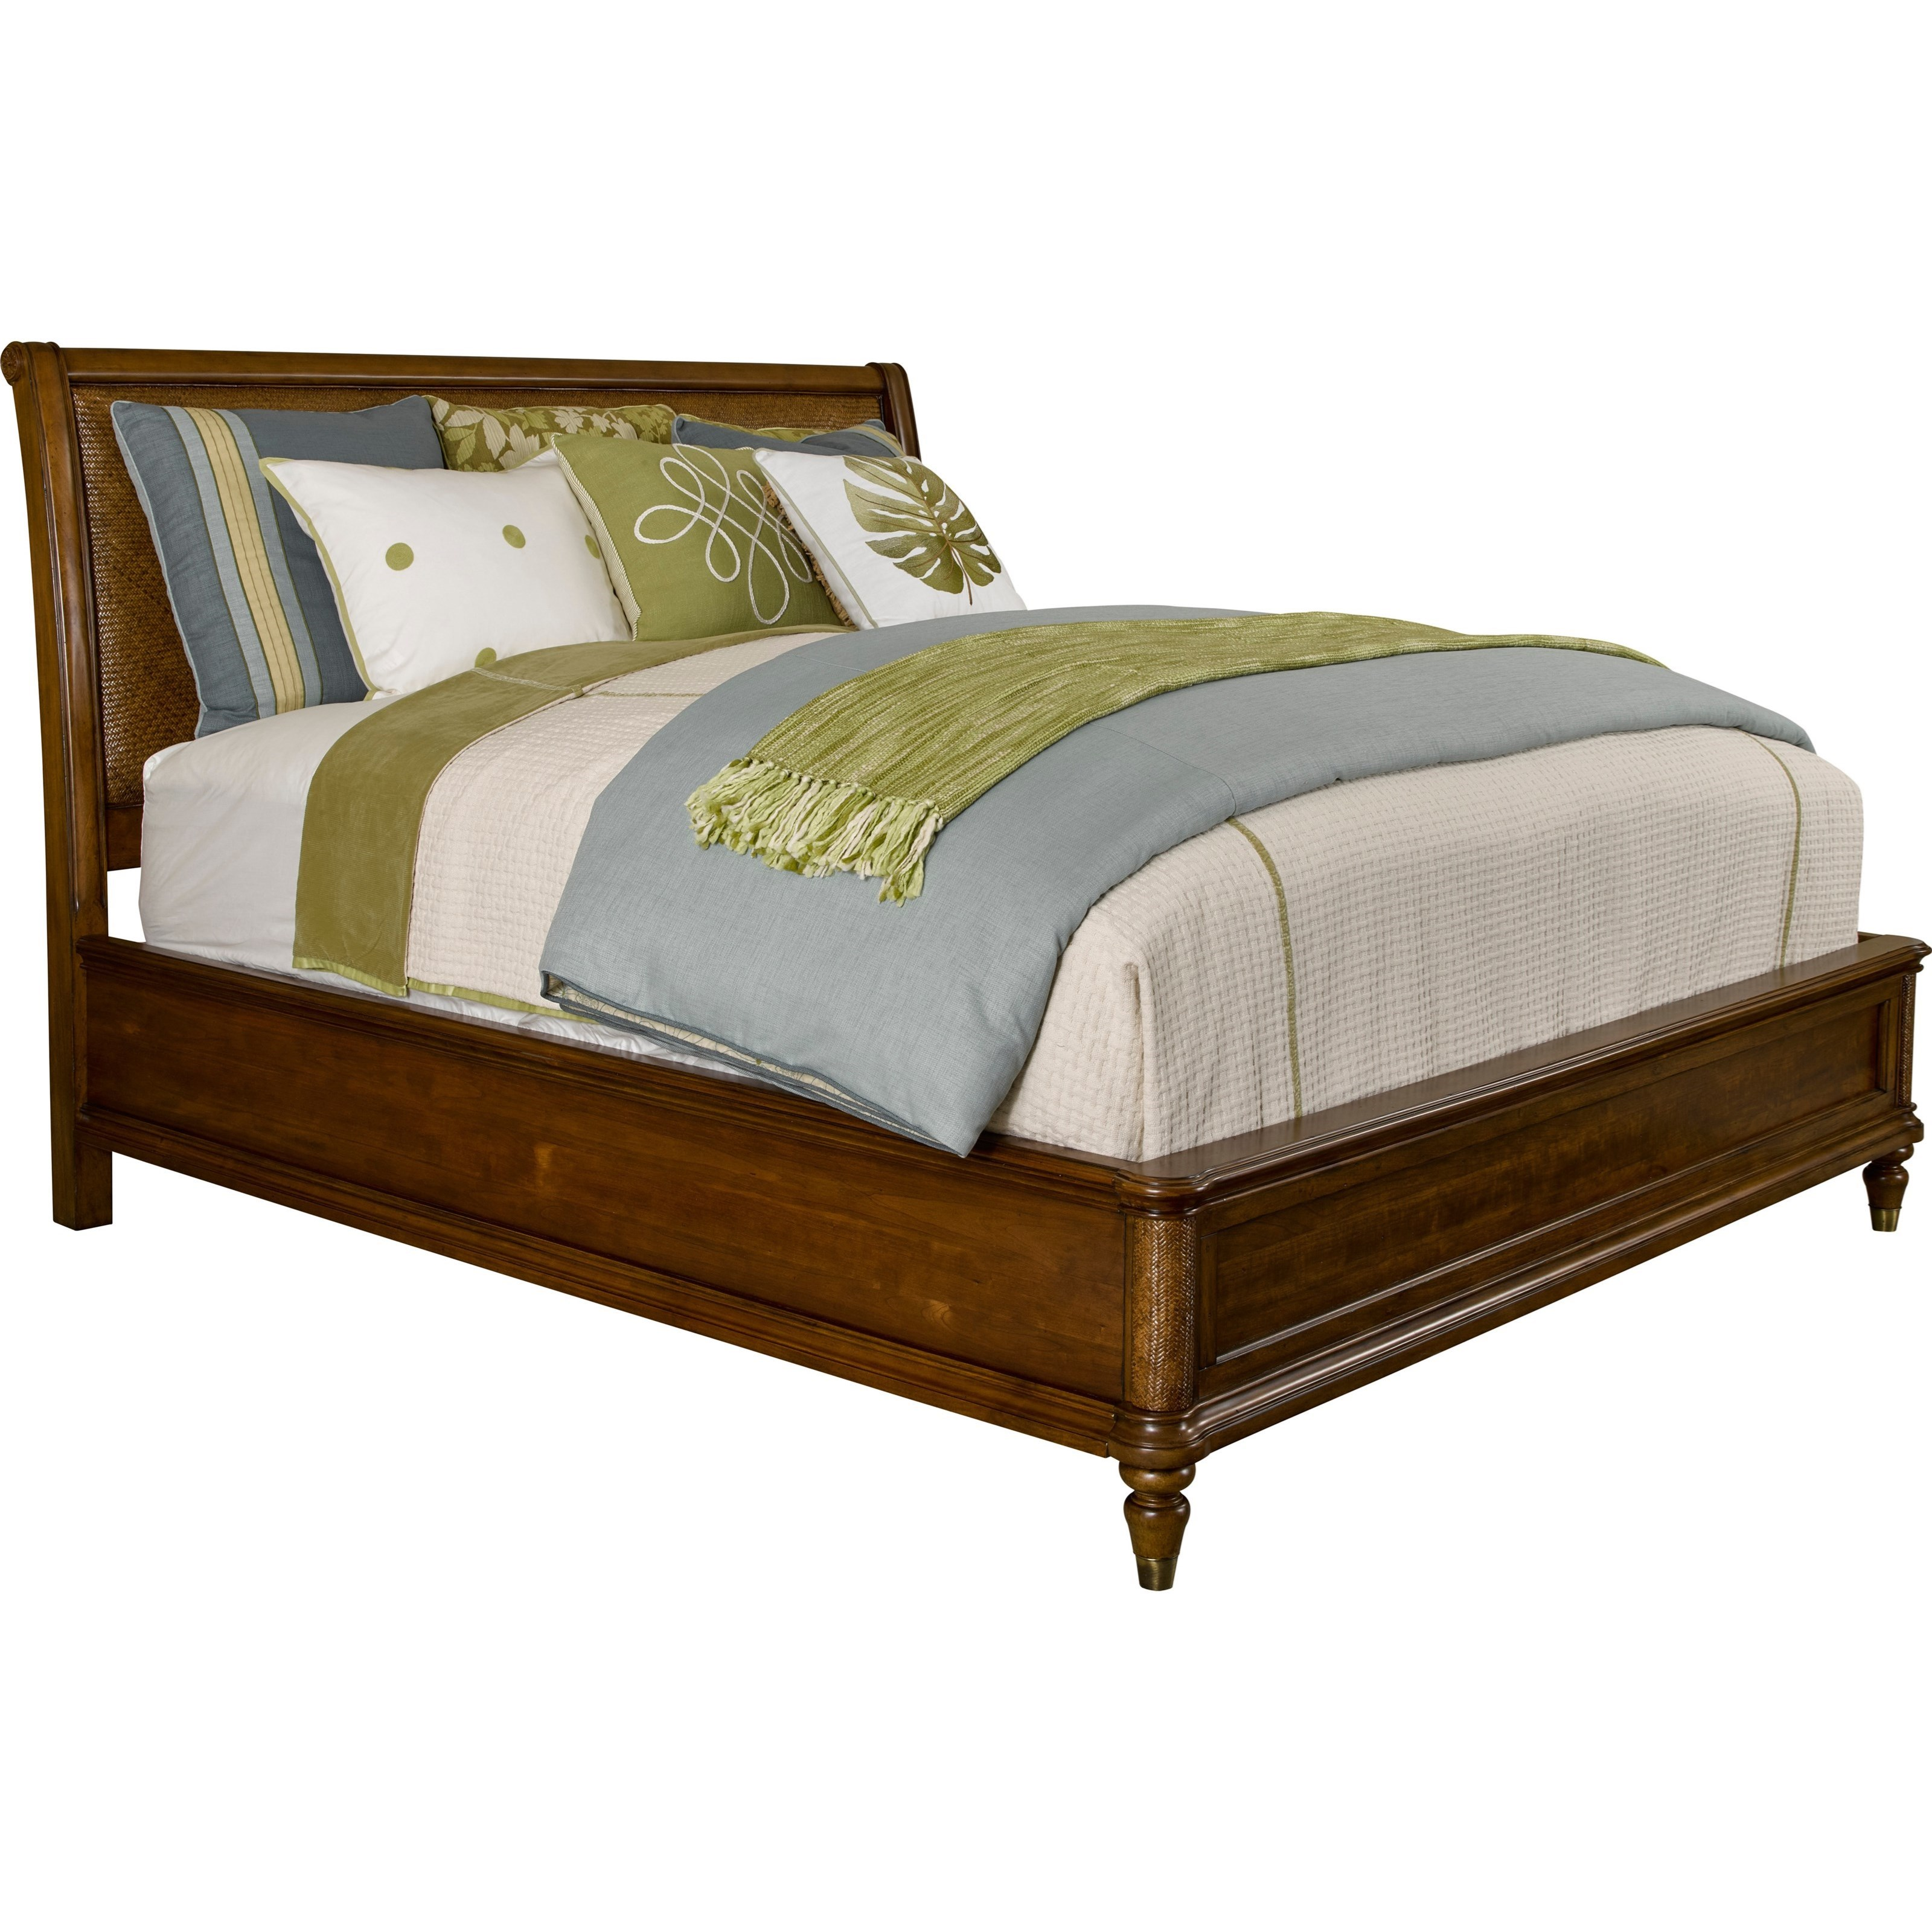 Broyhill Furniture Amalie Bay King Sleigh Bed - Item Number: 4548-263+265+461